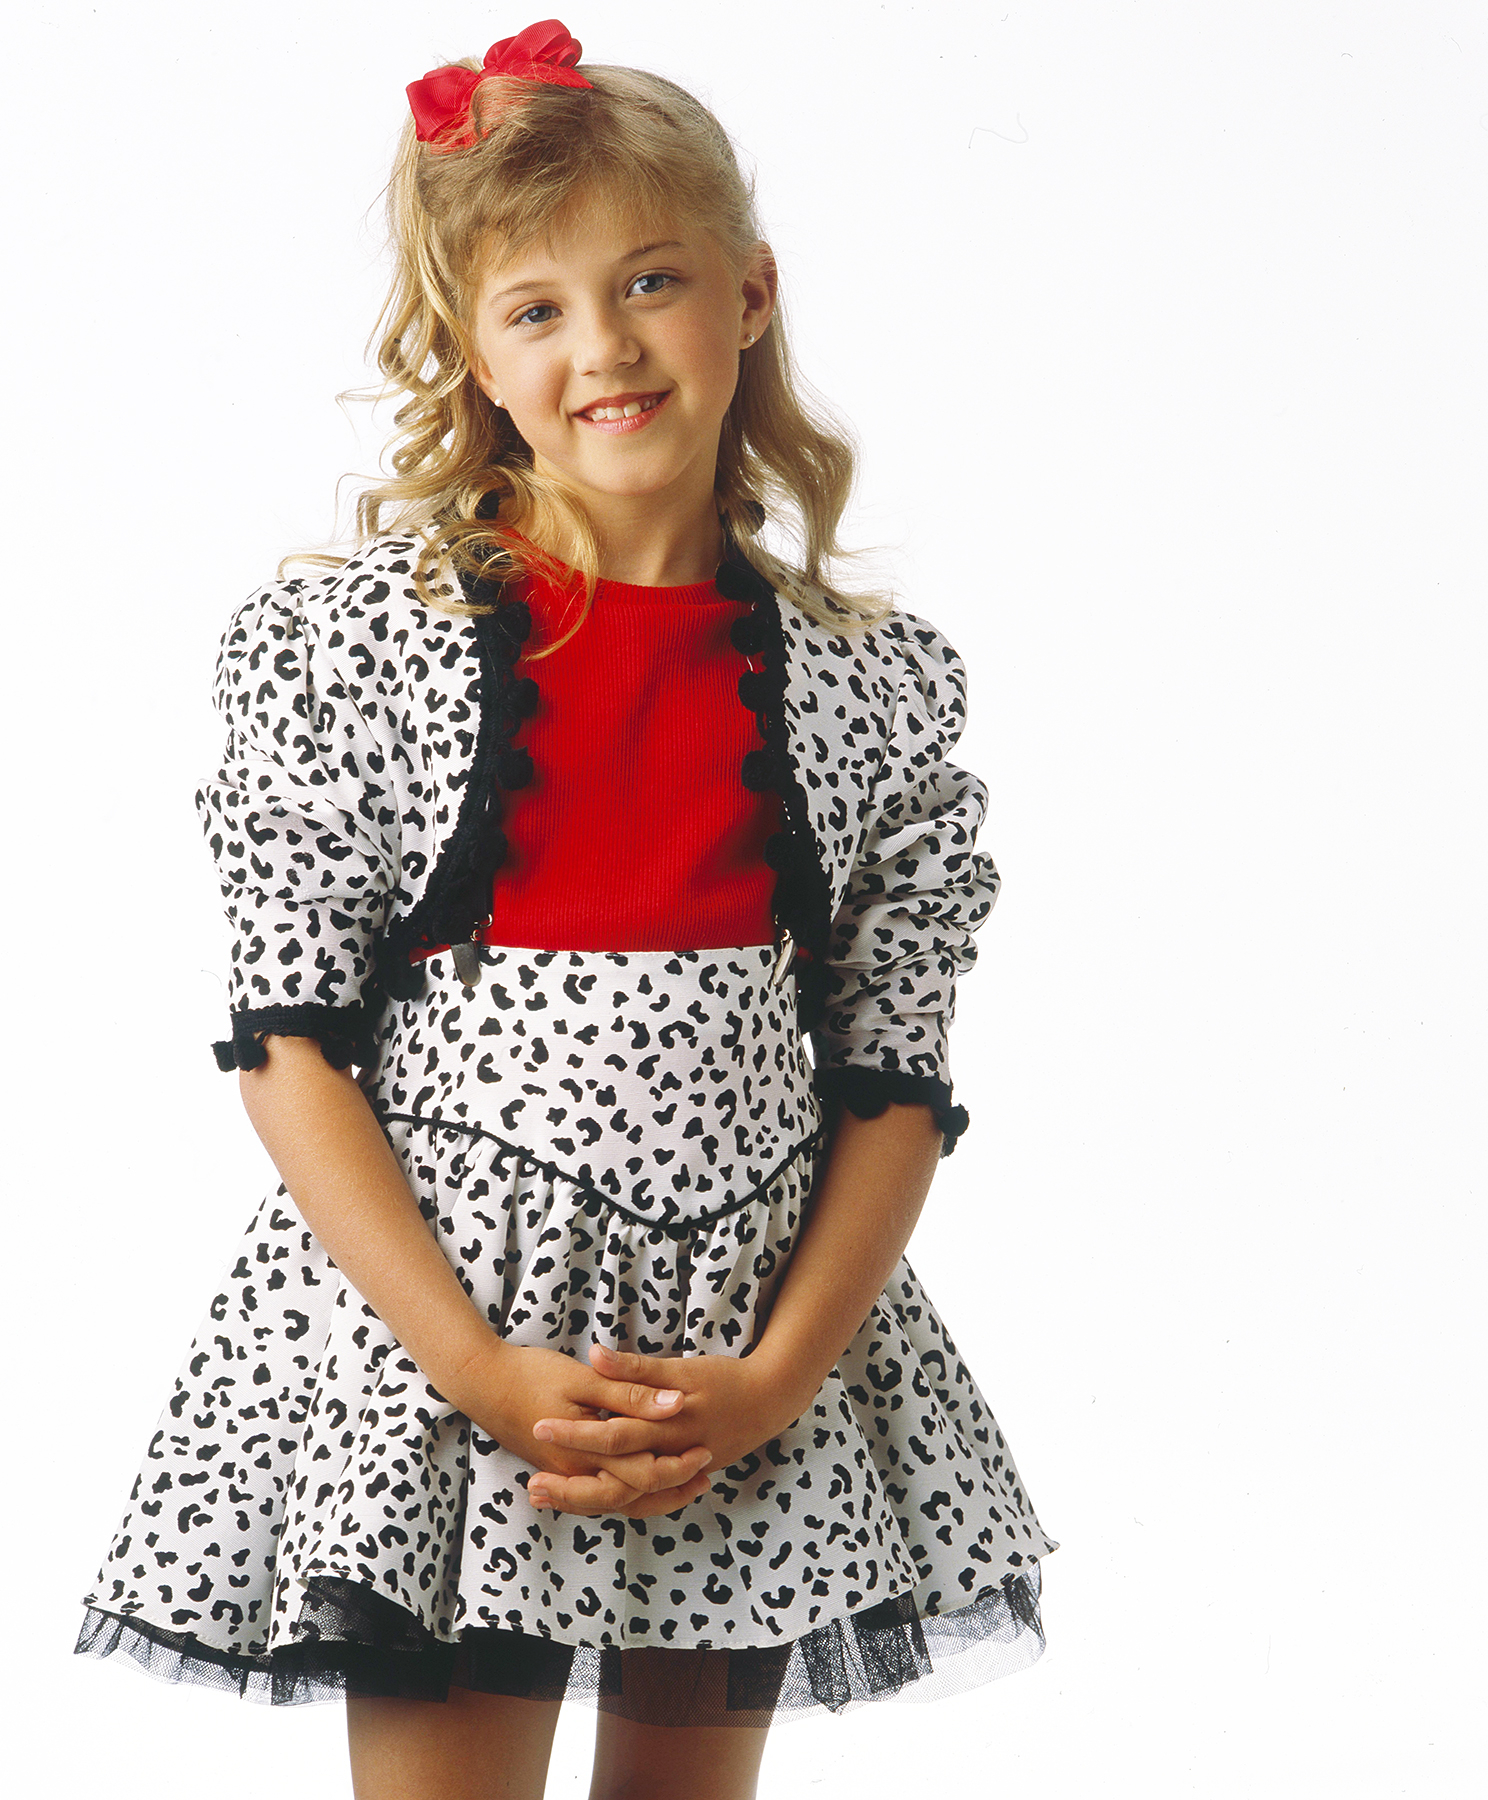 Jodie Sweetin in 1990